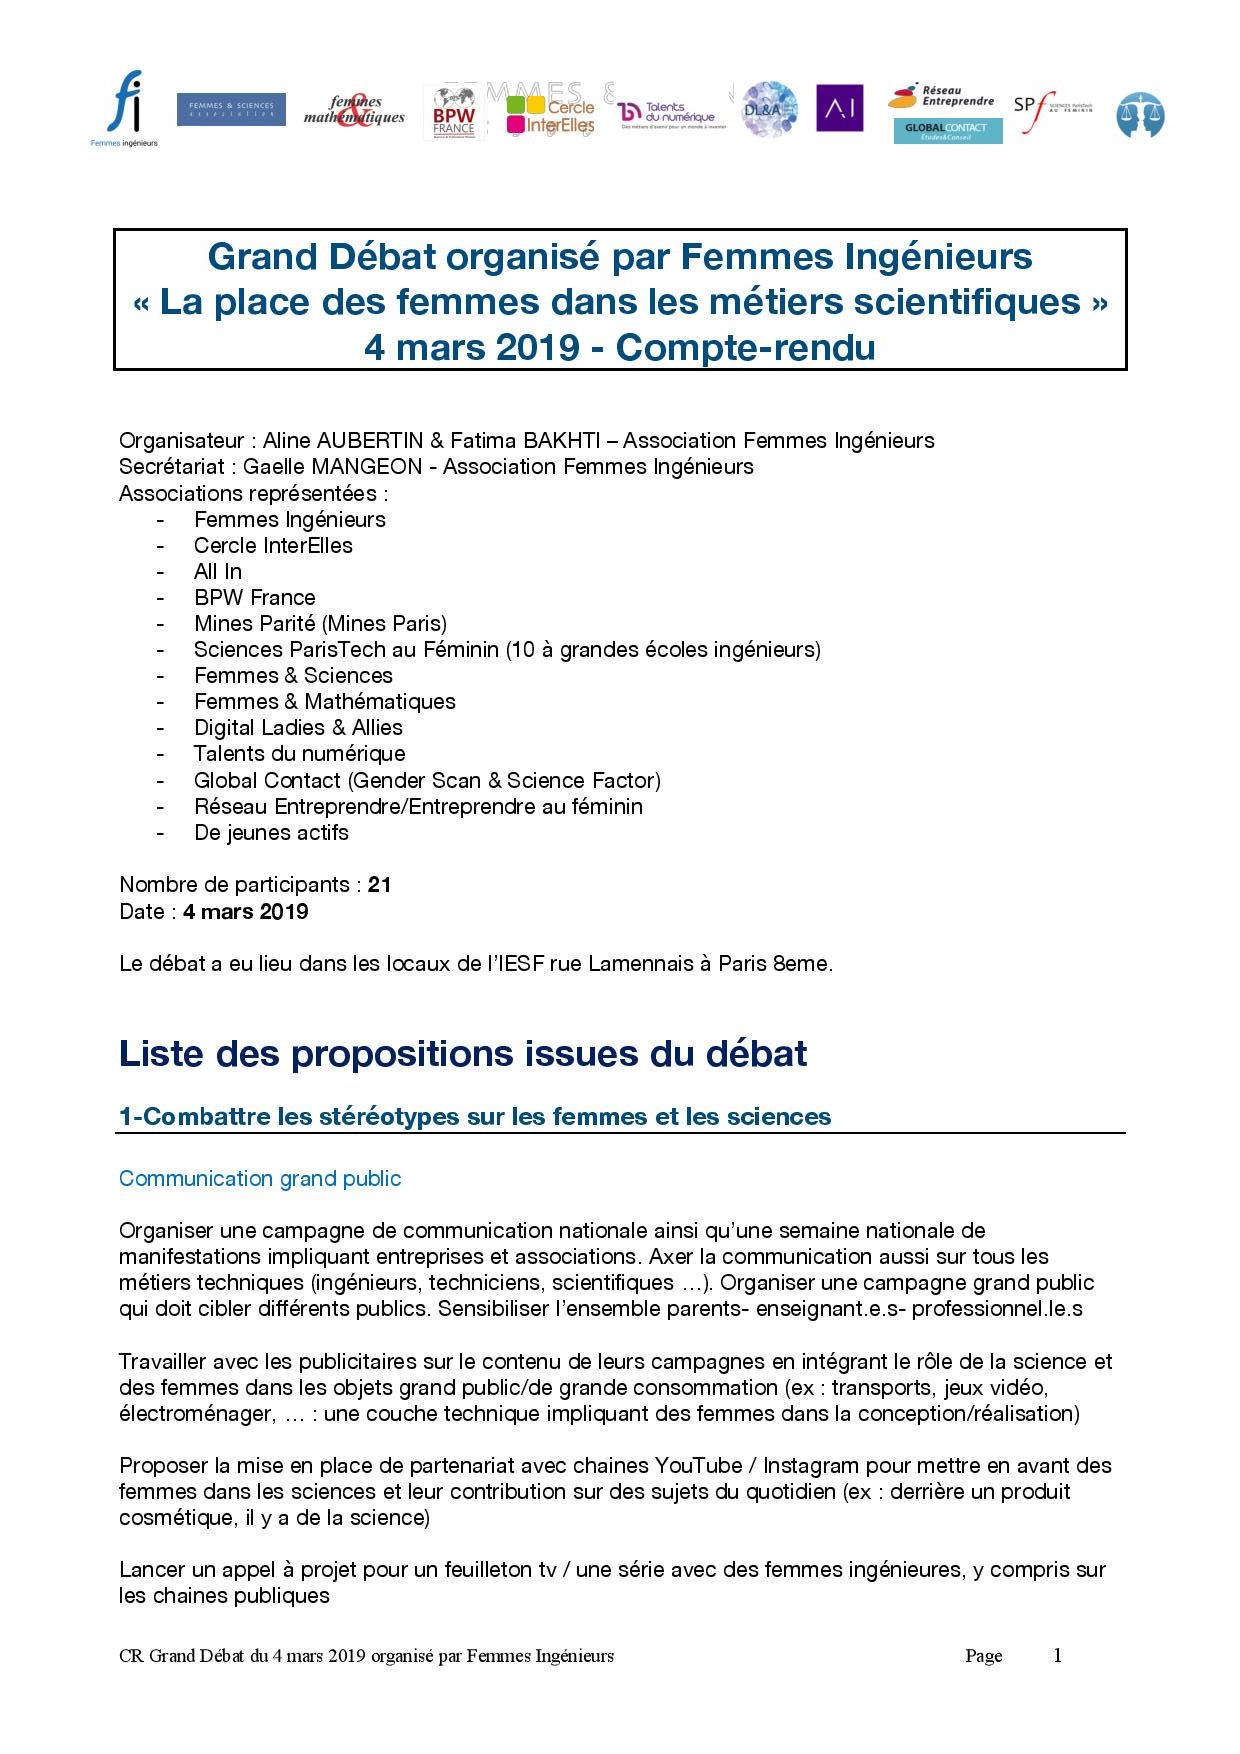 20190403 FI Grand Debat Propositions V3-page-001